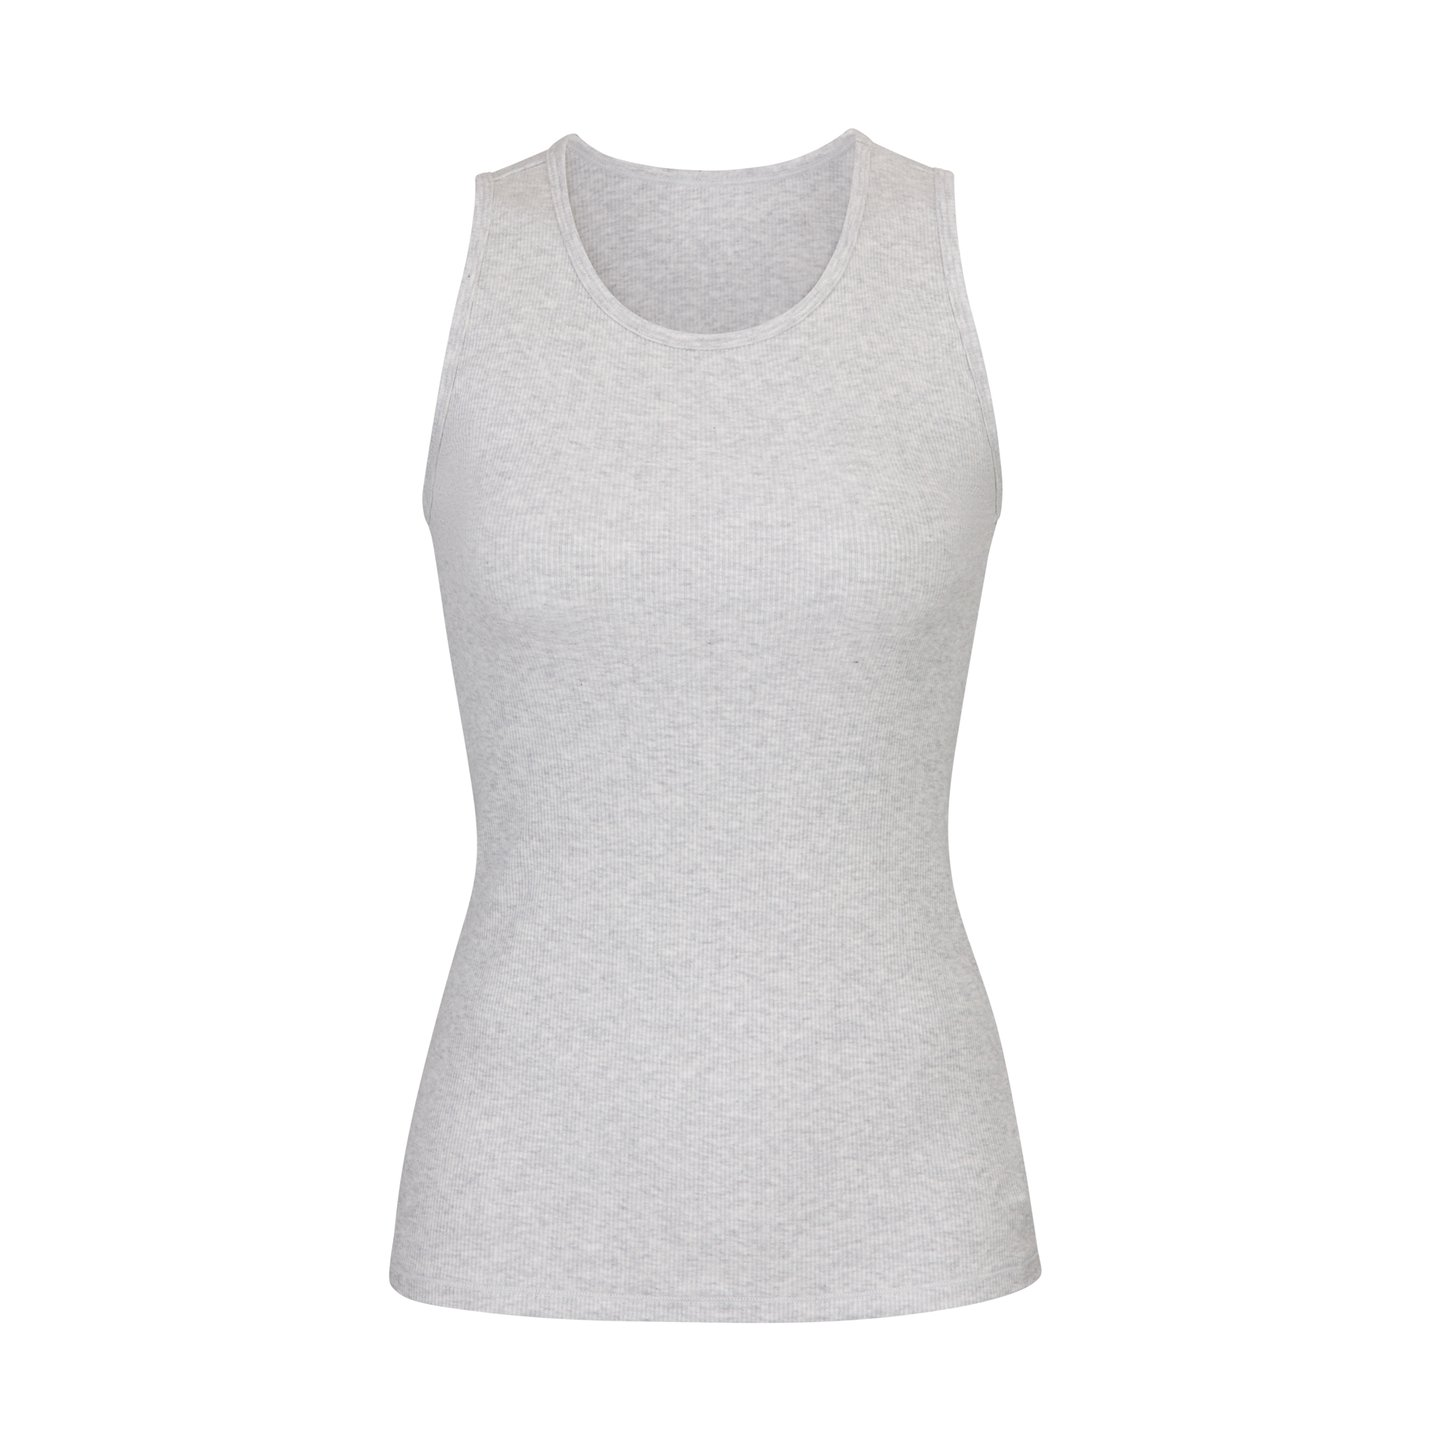 BOYFRIEND TANK by Skims, available on skims.com for $38 Hailey Baldwin Top Exact Product